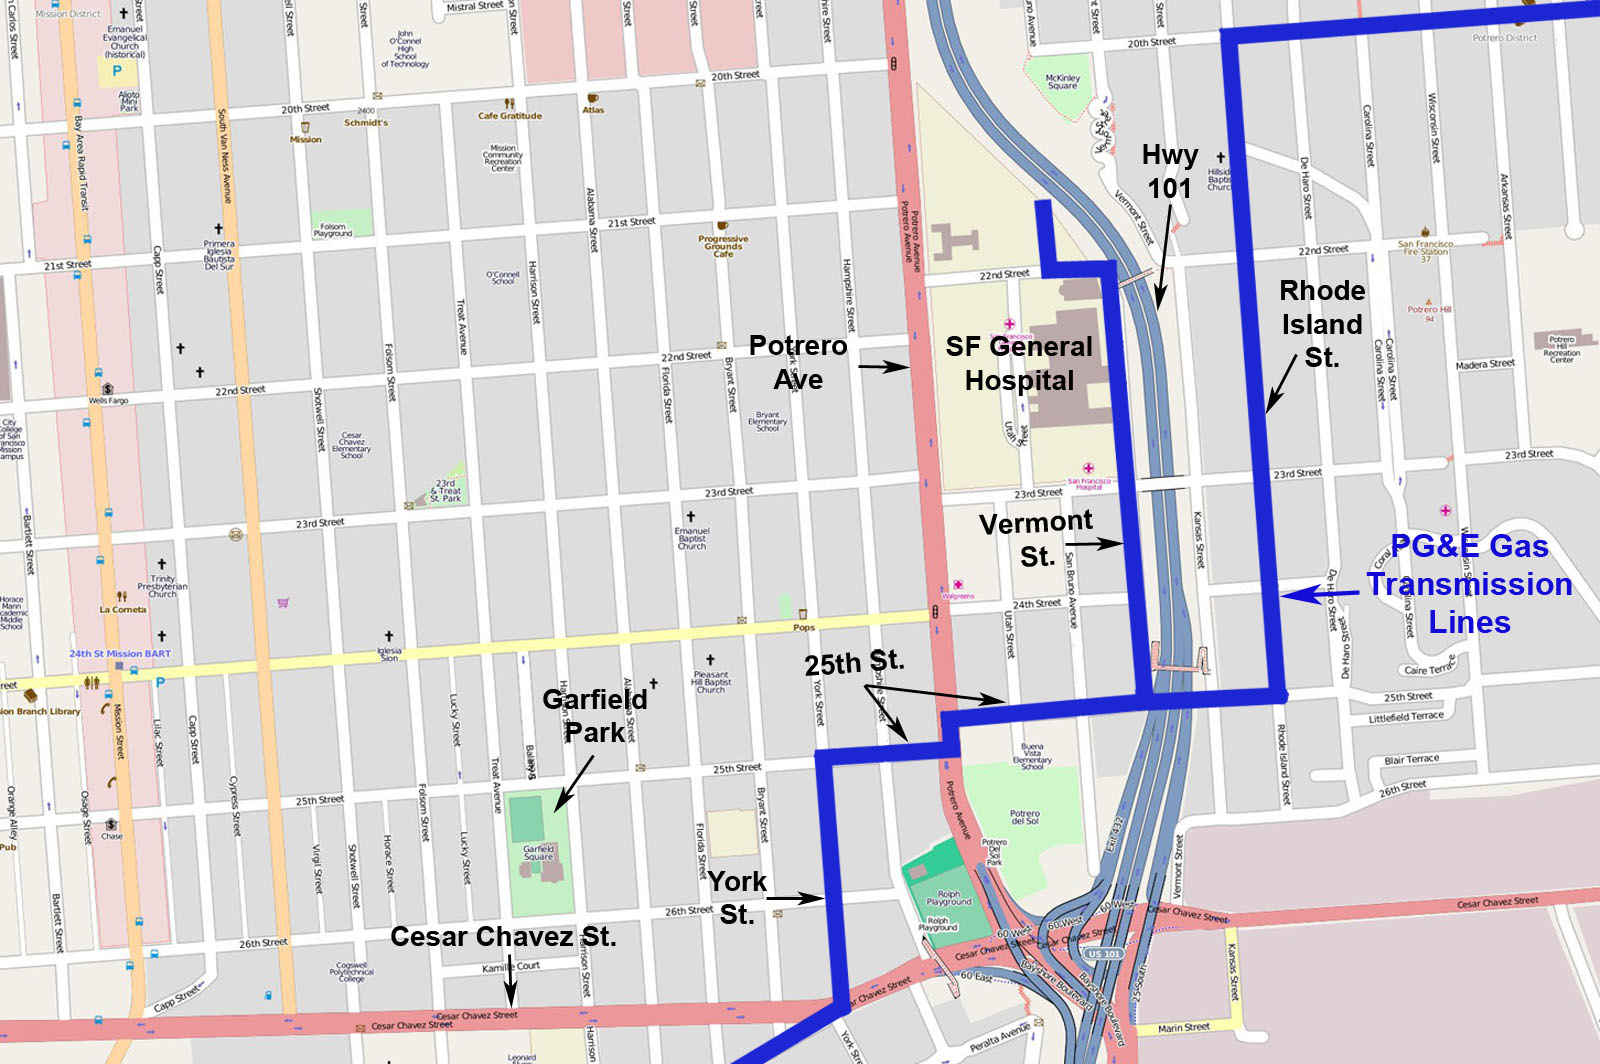 PG&E Pipelines in the Mission